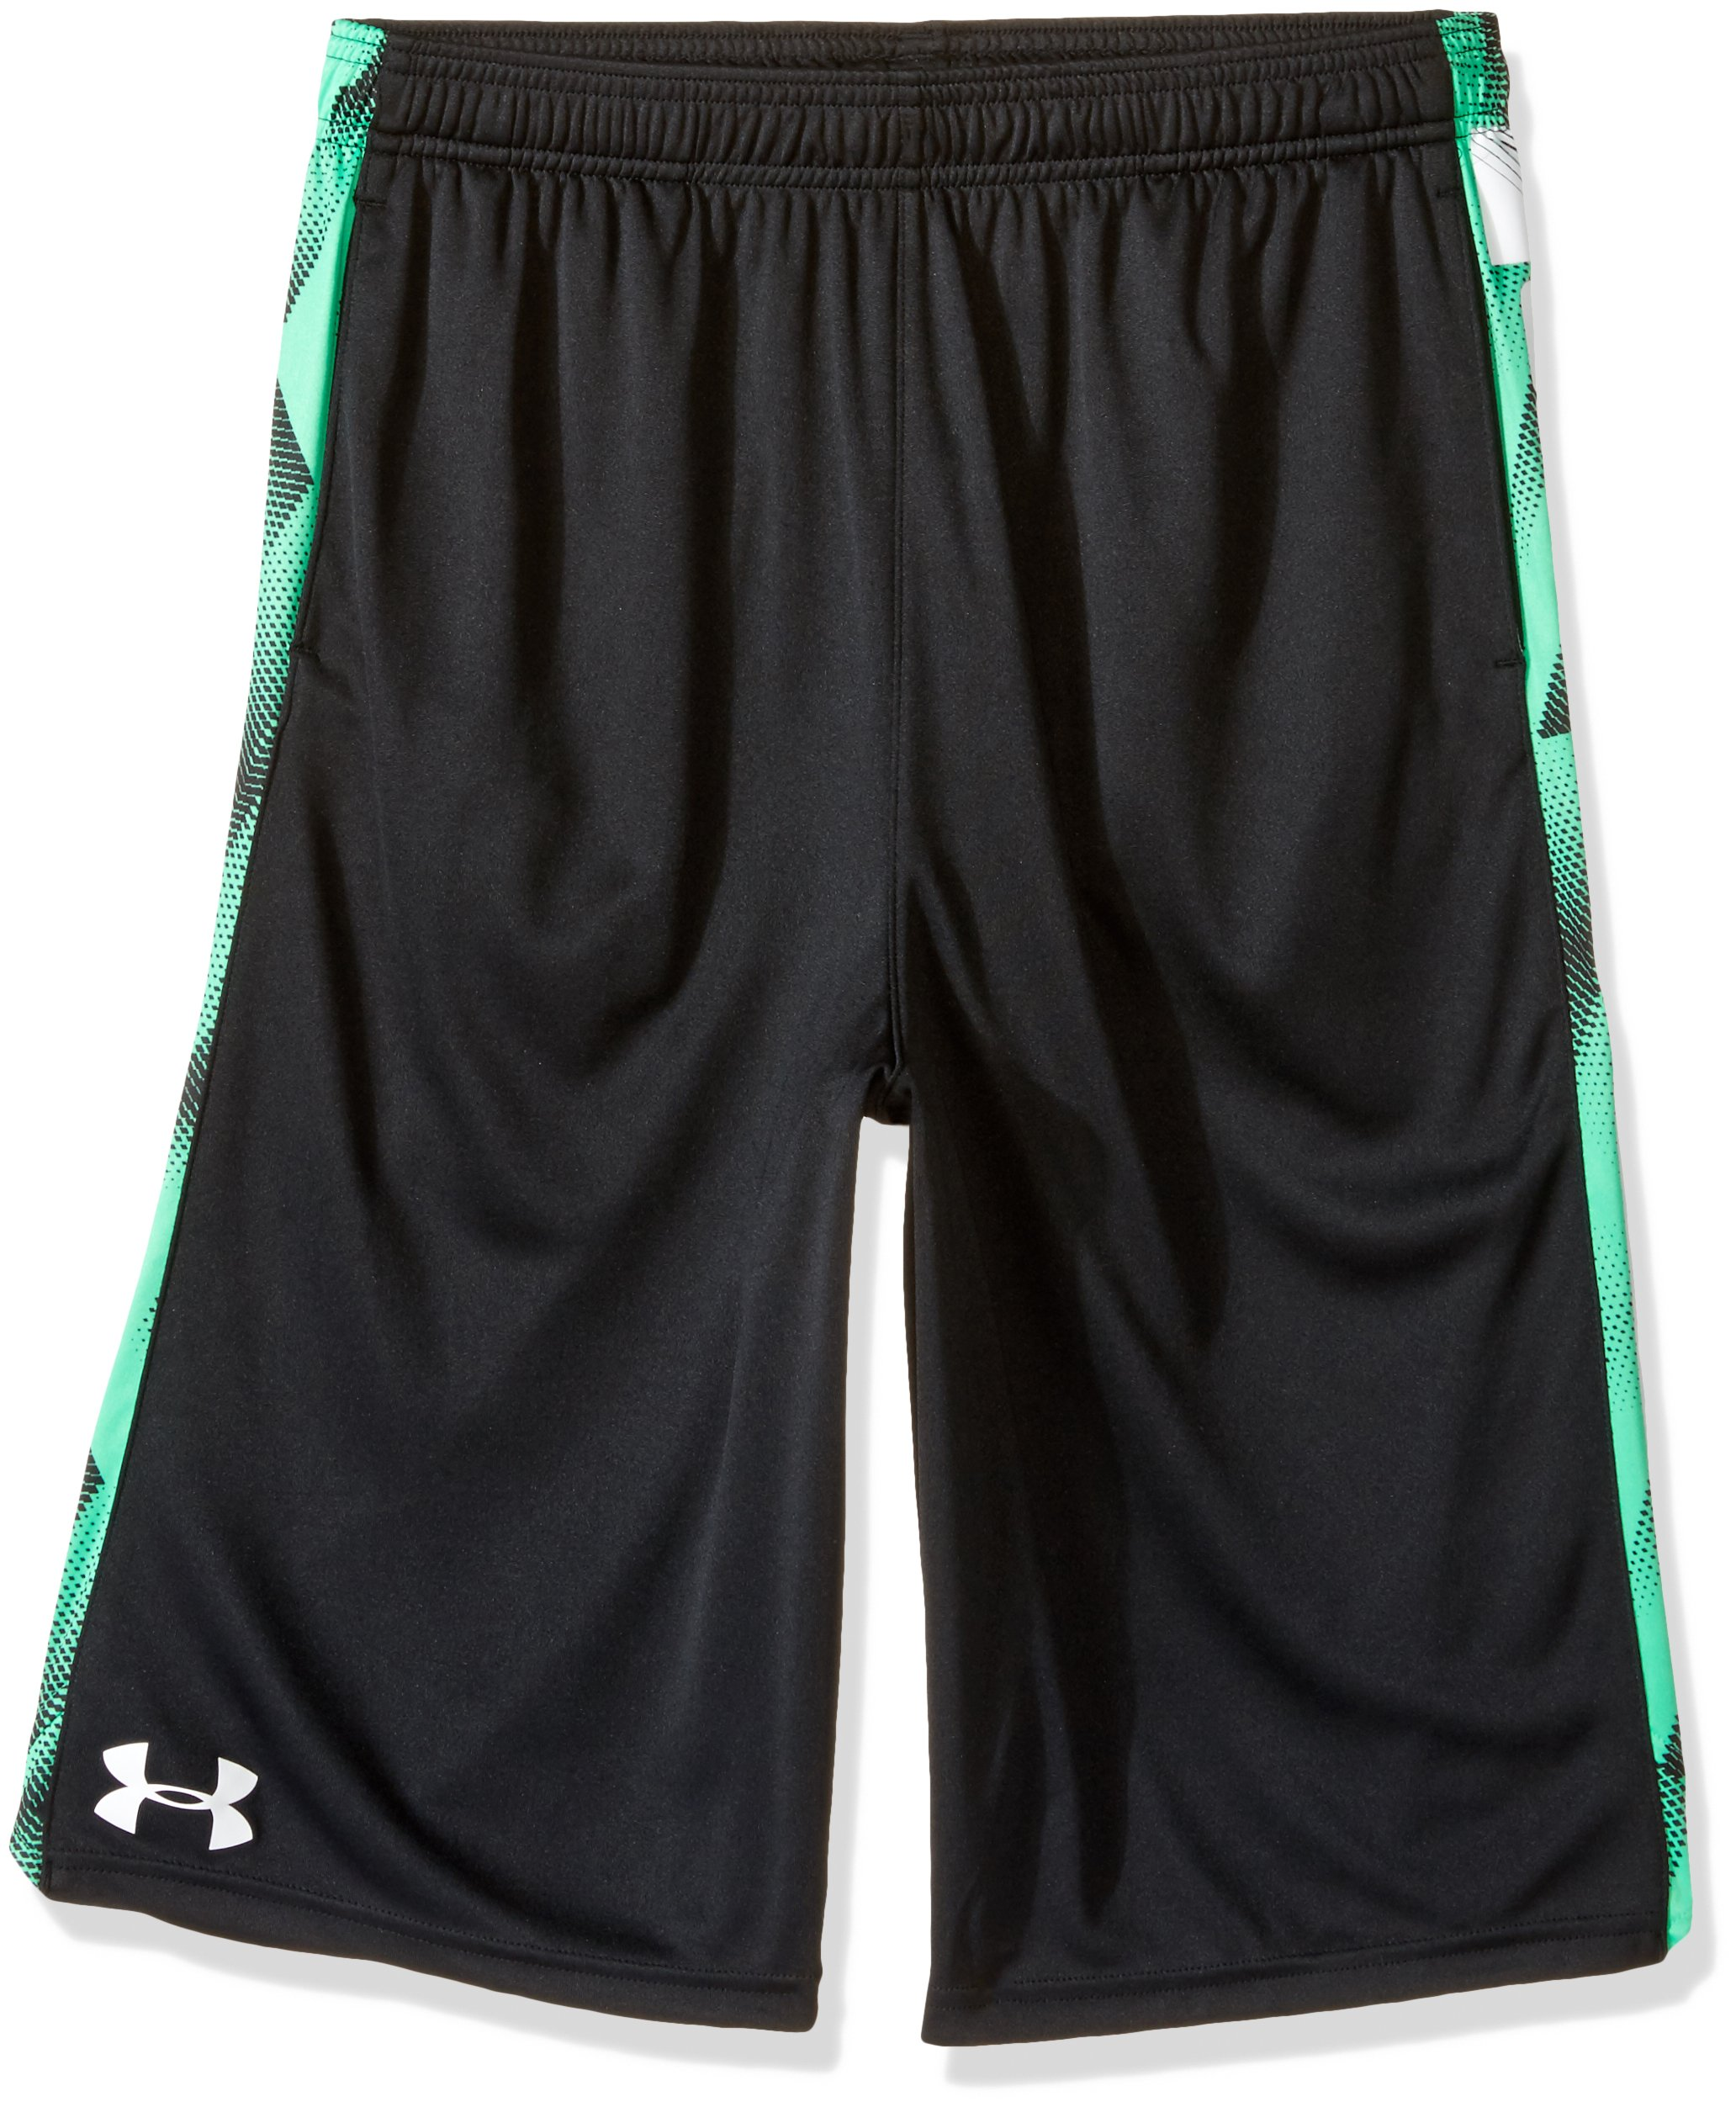 Under Armour Boys' Eliminator Printed Shorts, Black (005)/White, Youth Medium by Under Armour